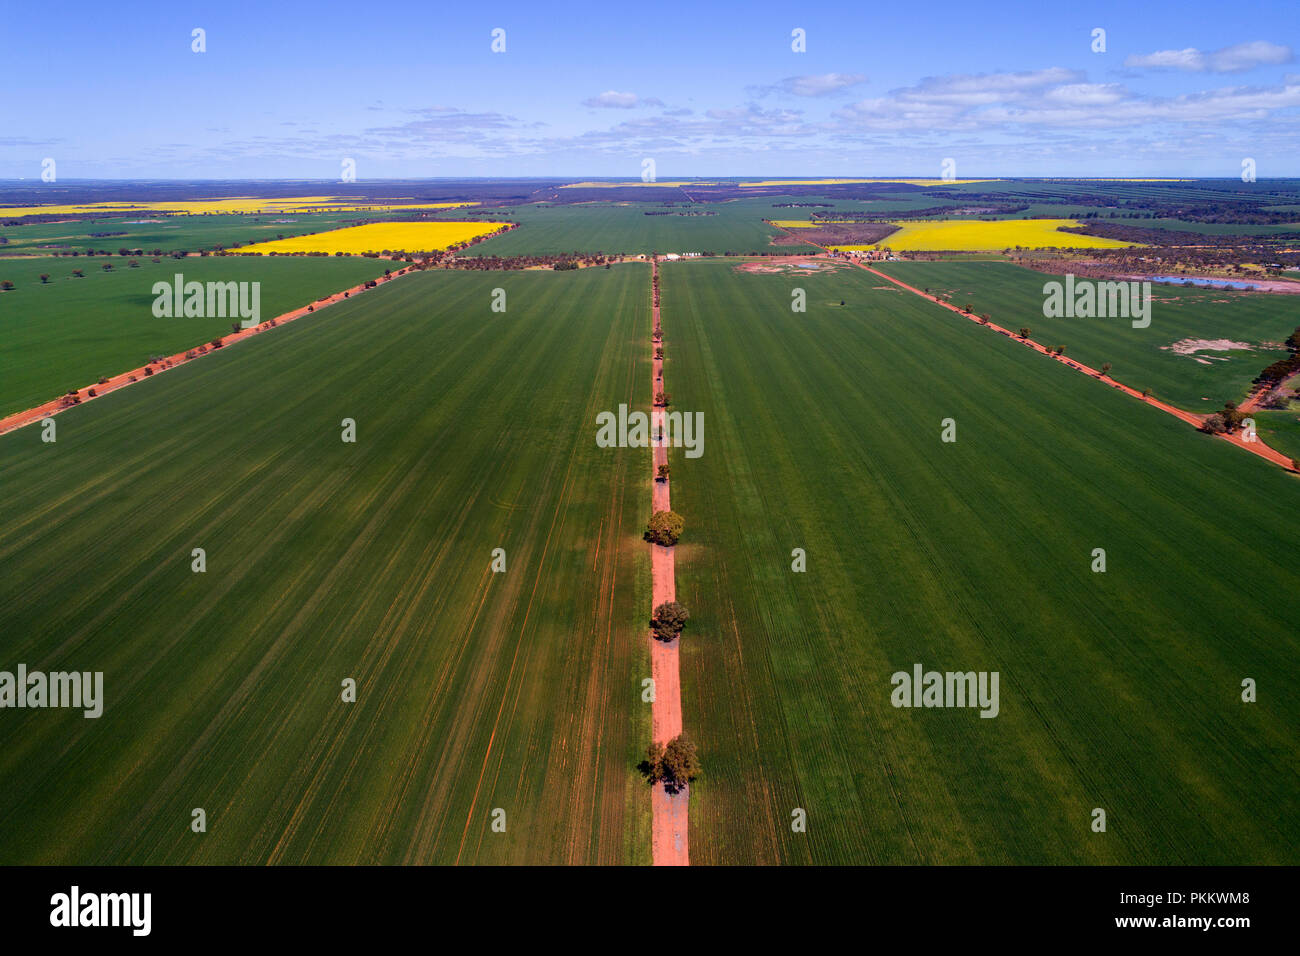 Aerial view of Wheat Crop, Midwest, Western Australia - Stock Image